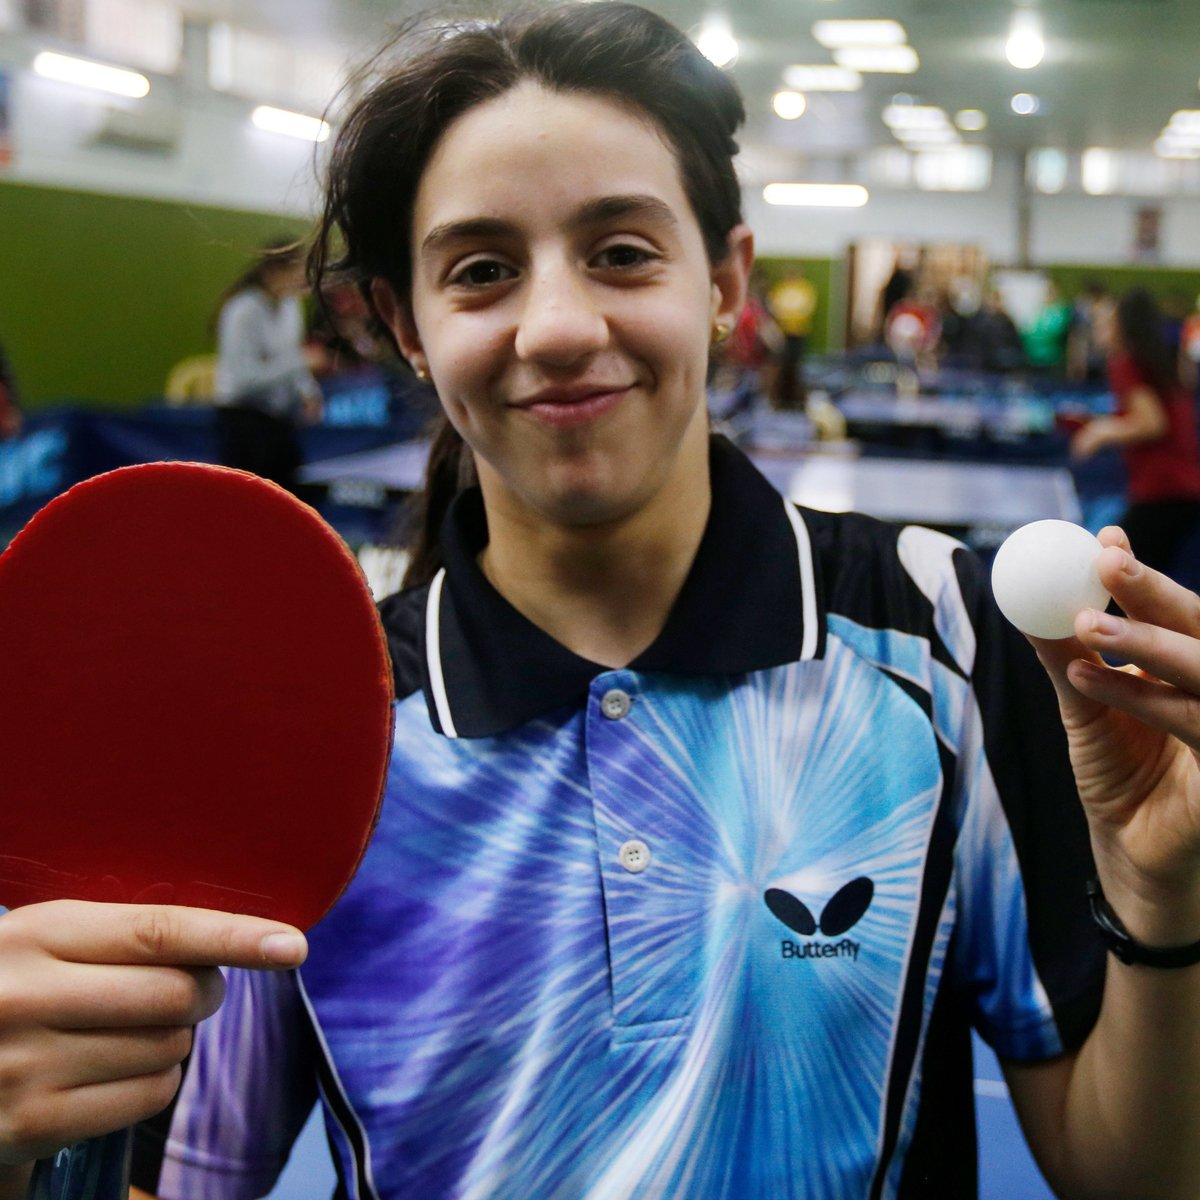 At Just 12 Years Old, Hend Zaza Is the Youngest Athlete at the 2020 Tokyo Olympic Games